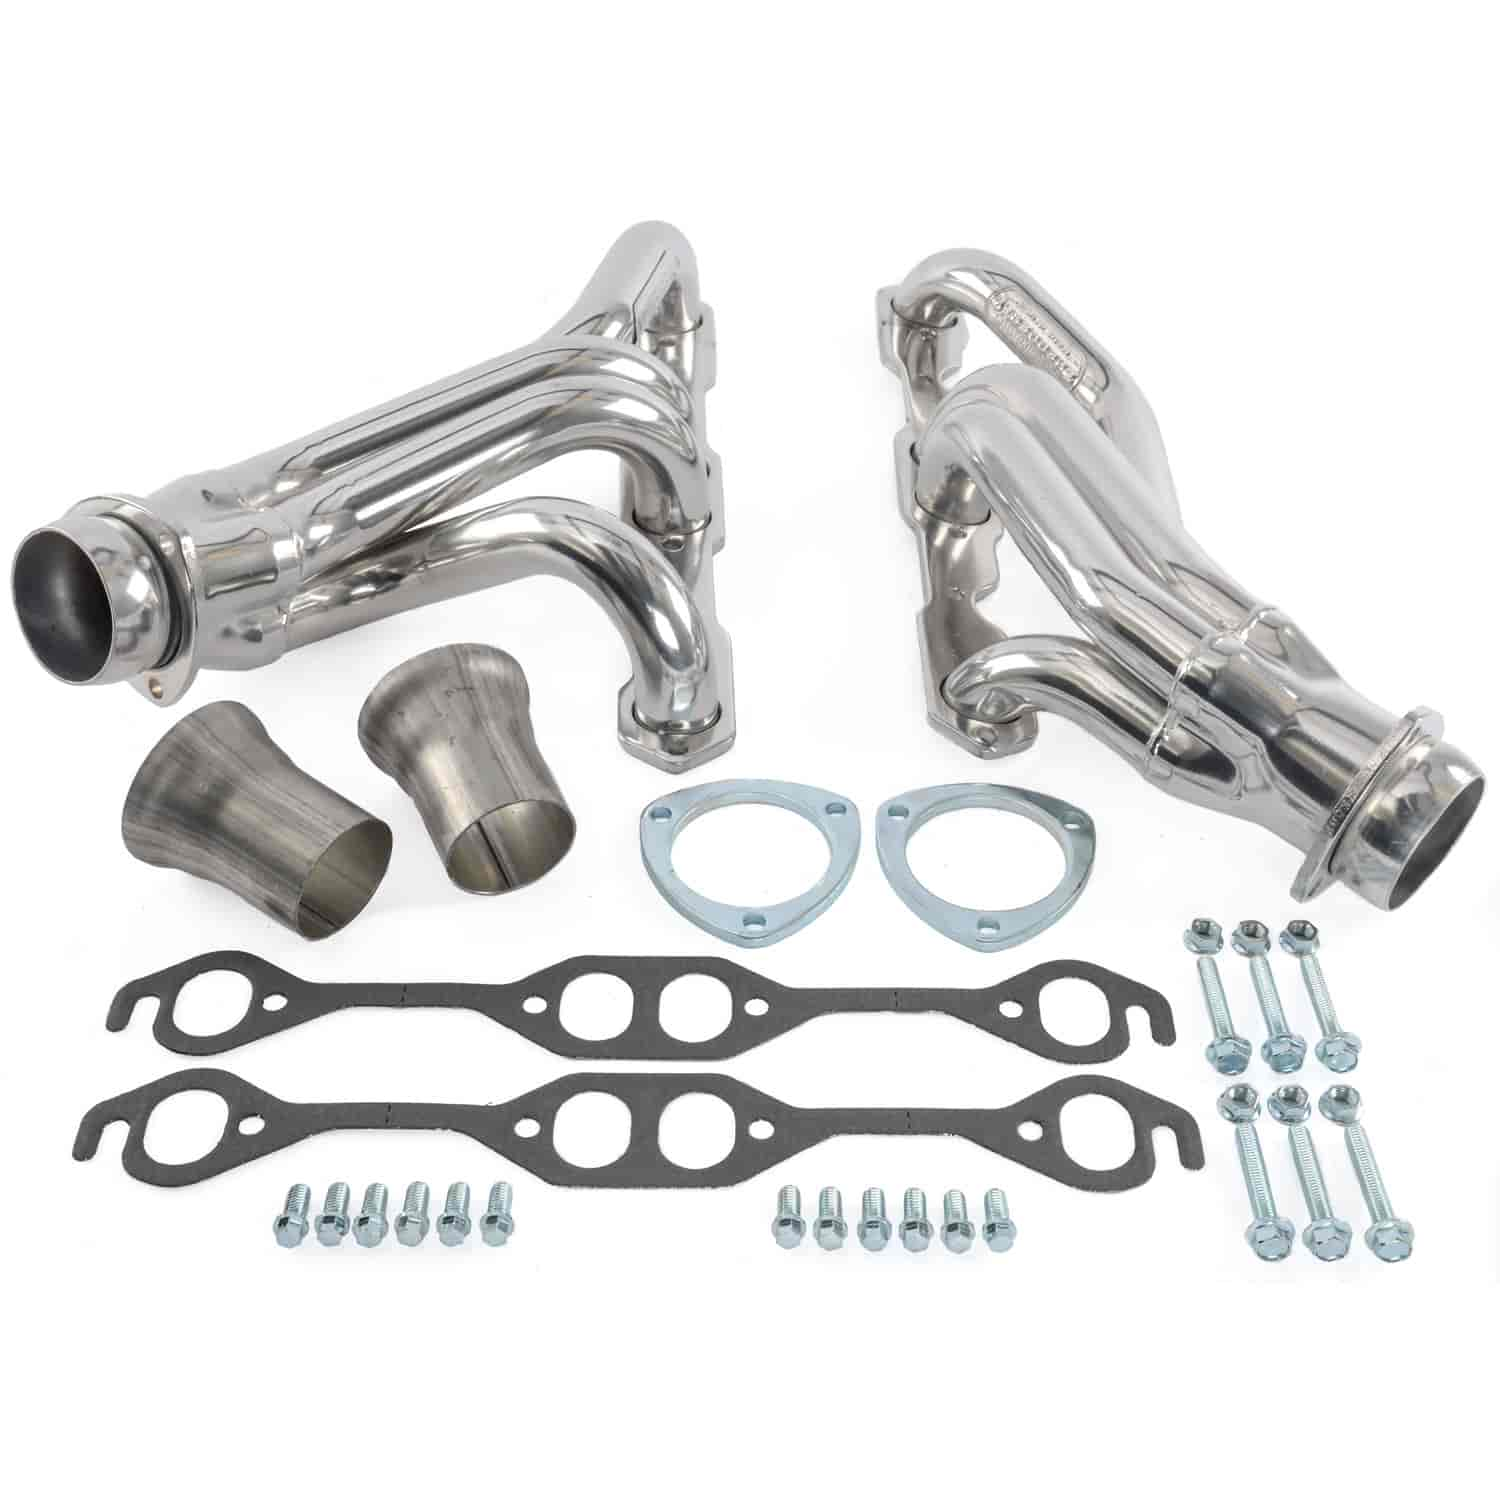 Hedman 69016: Standard Duty HTC Coated Mid-Length Headers